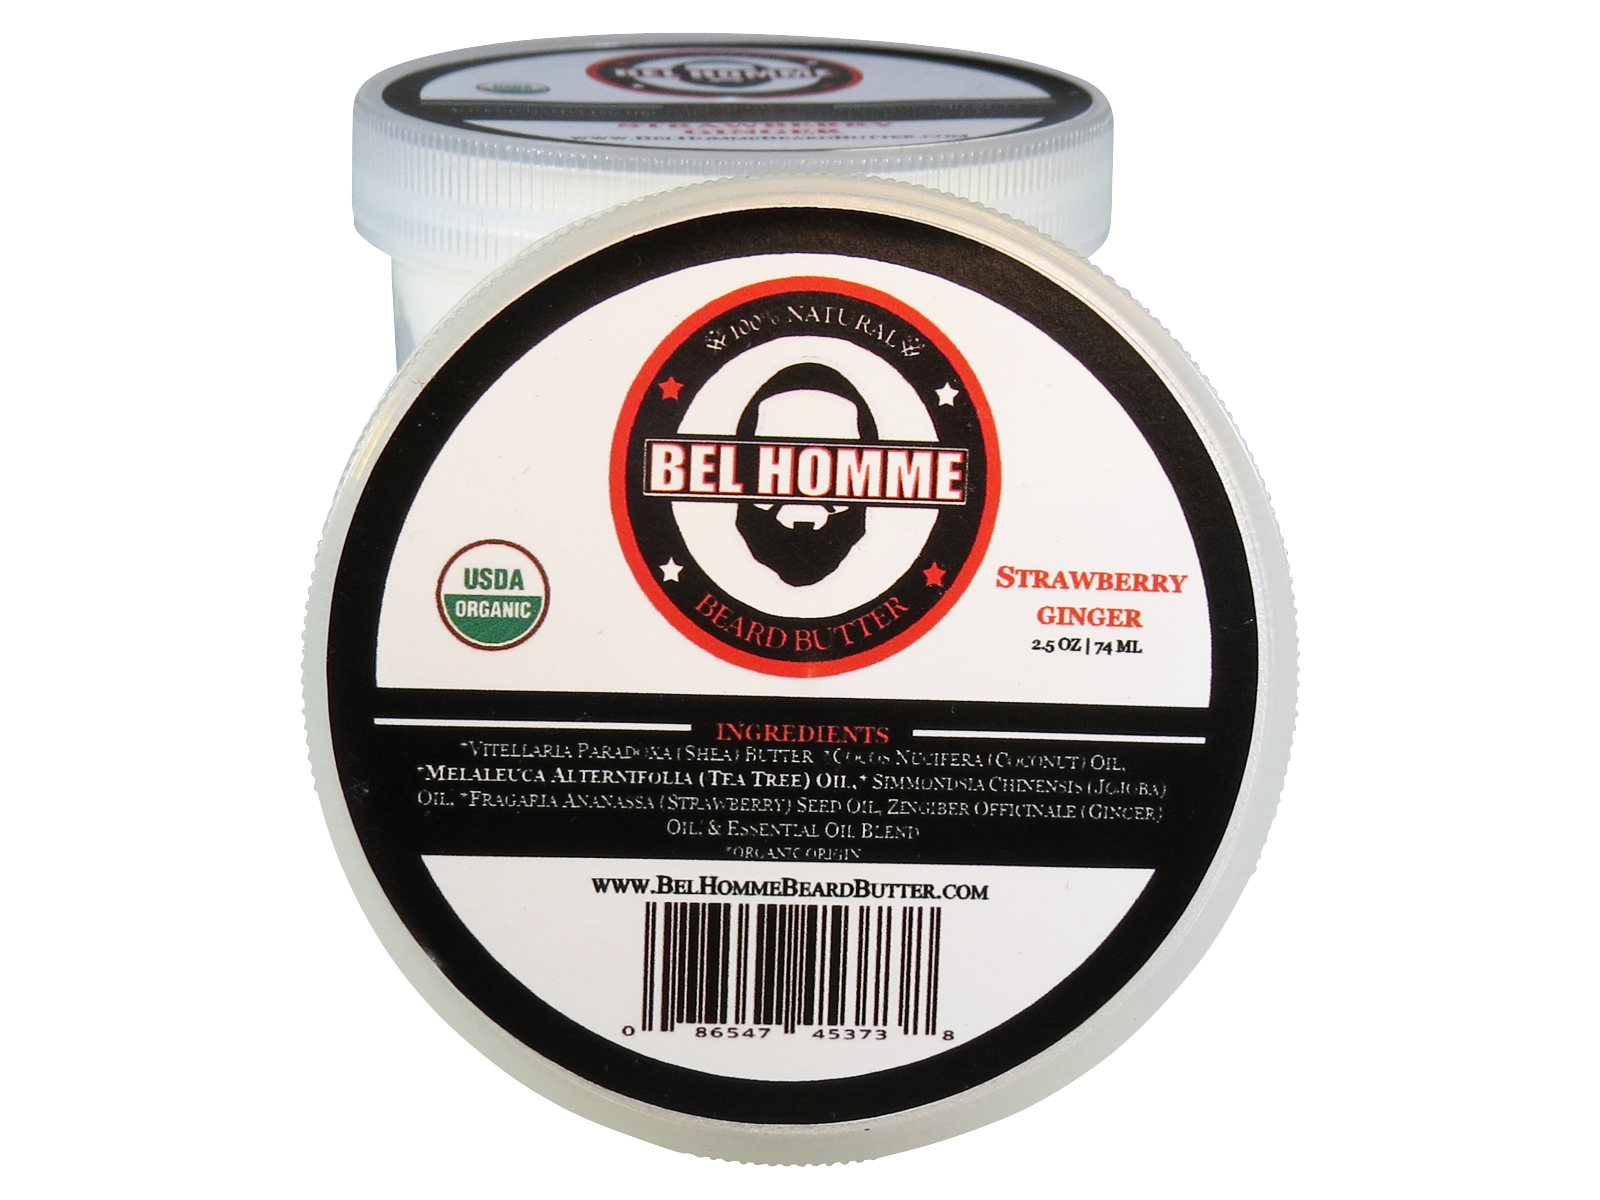 2.5oz Strawberry Ginger Bel Homme Beard Butter.